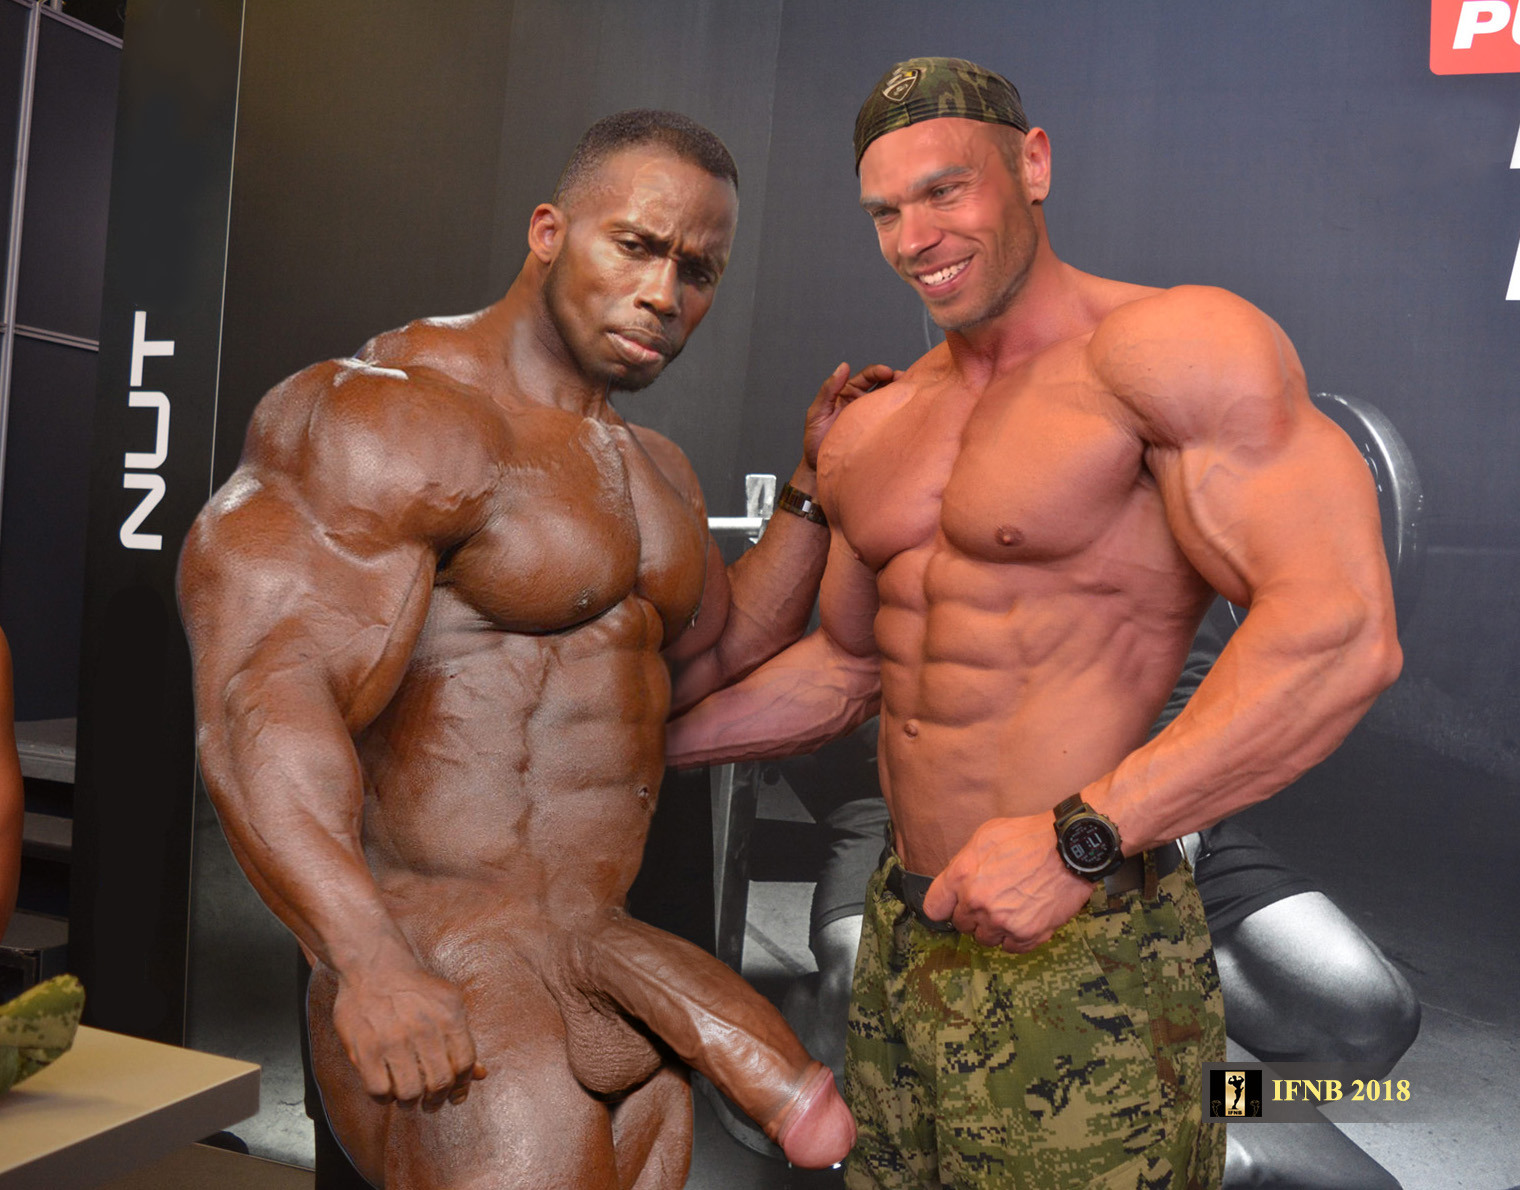 The Ifnb Report Massive Muscle And Cock Blog-1727